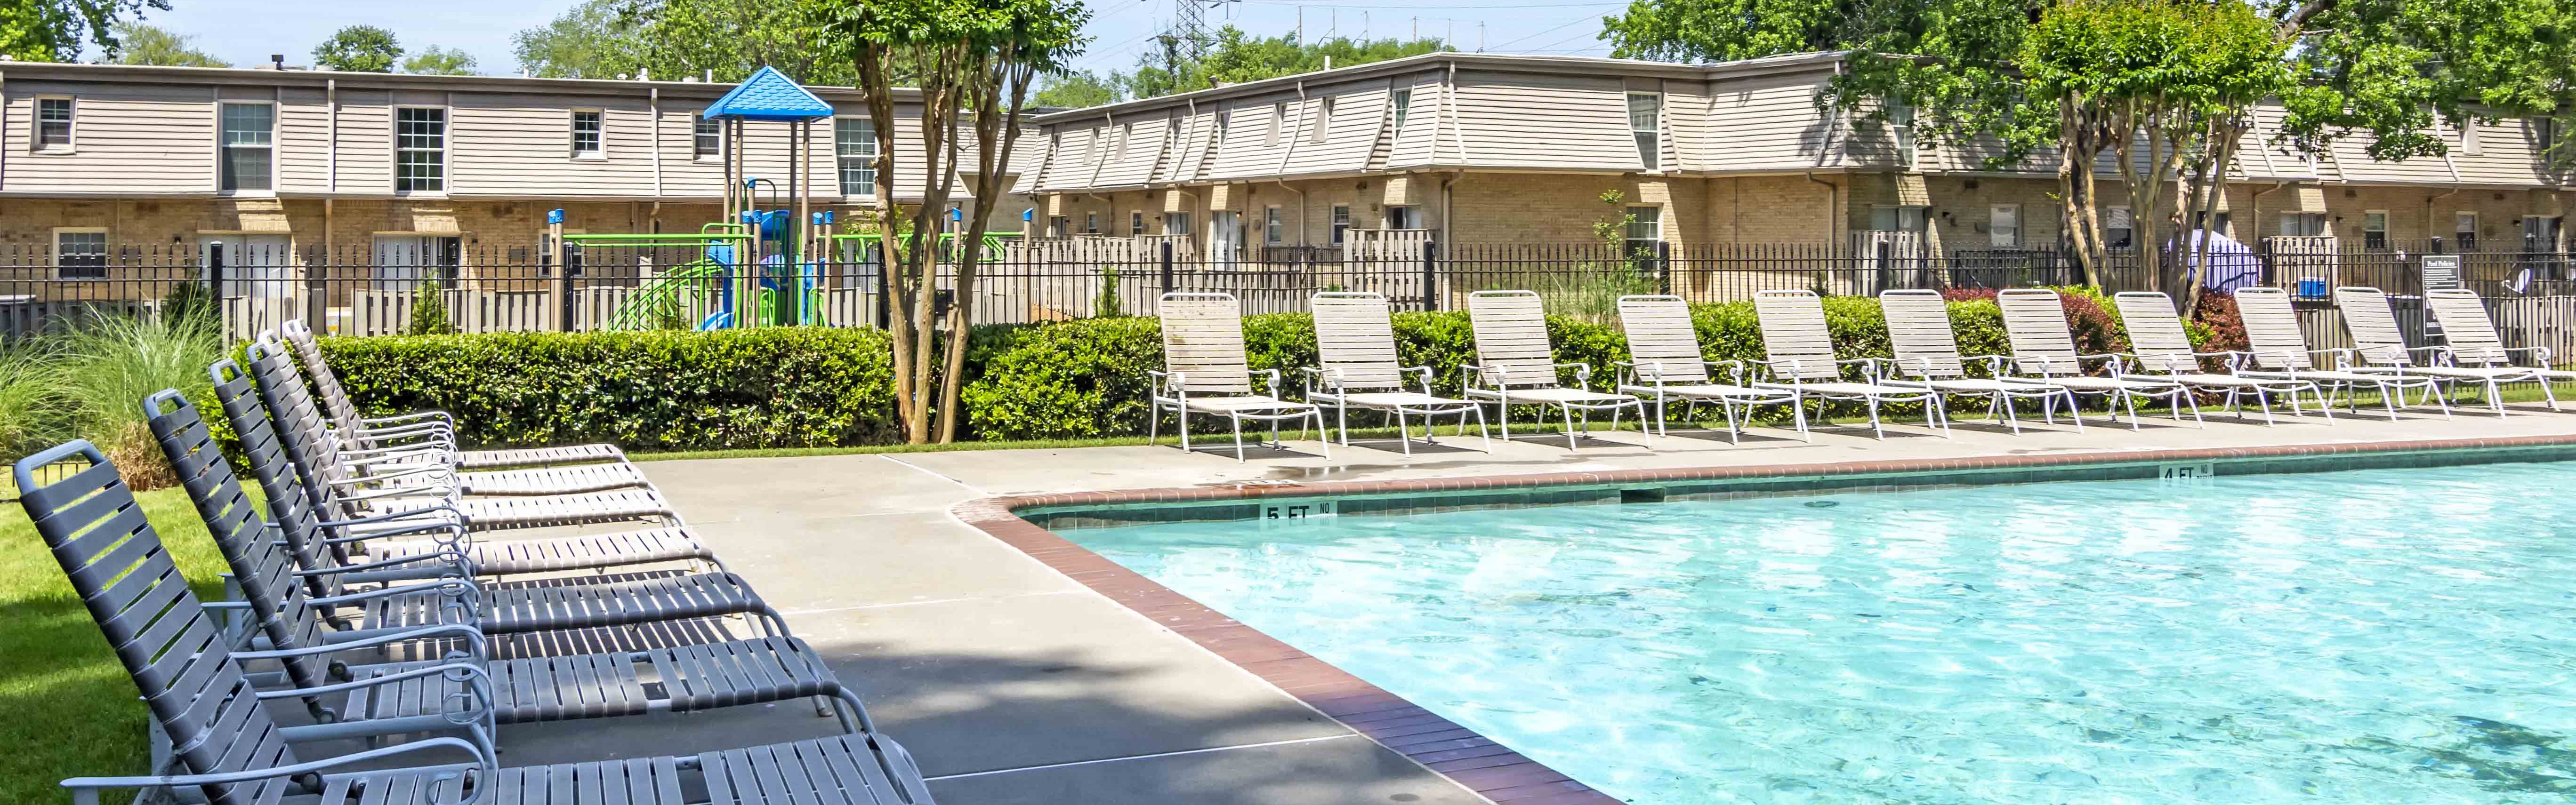 Laurel Pointe | Apartments in Forest Park, GA